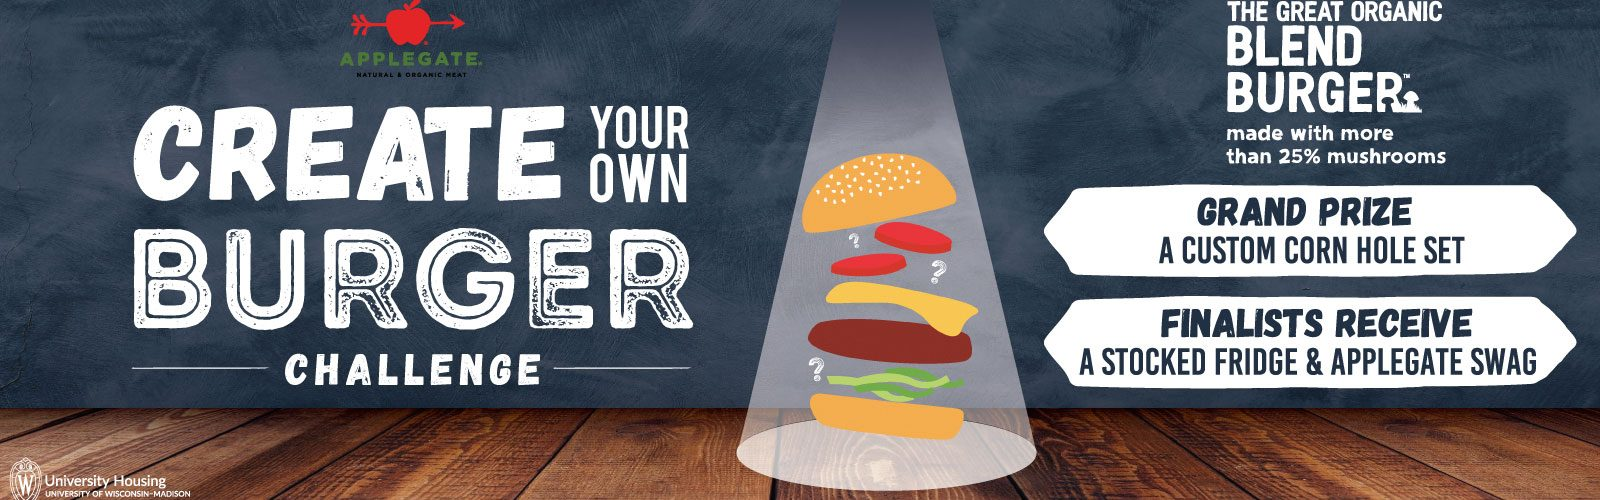 Applegate's Create Your Own Burger Challenge, enter by Nov. 22 and you could win a fridge stocked with Applegate snacks, treats & goodies.